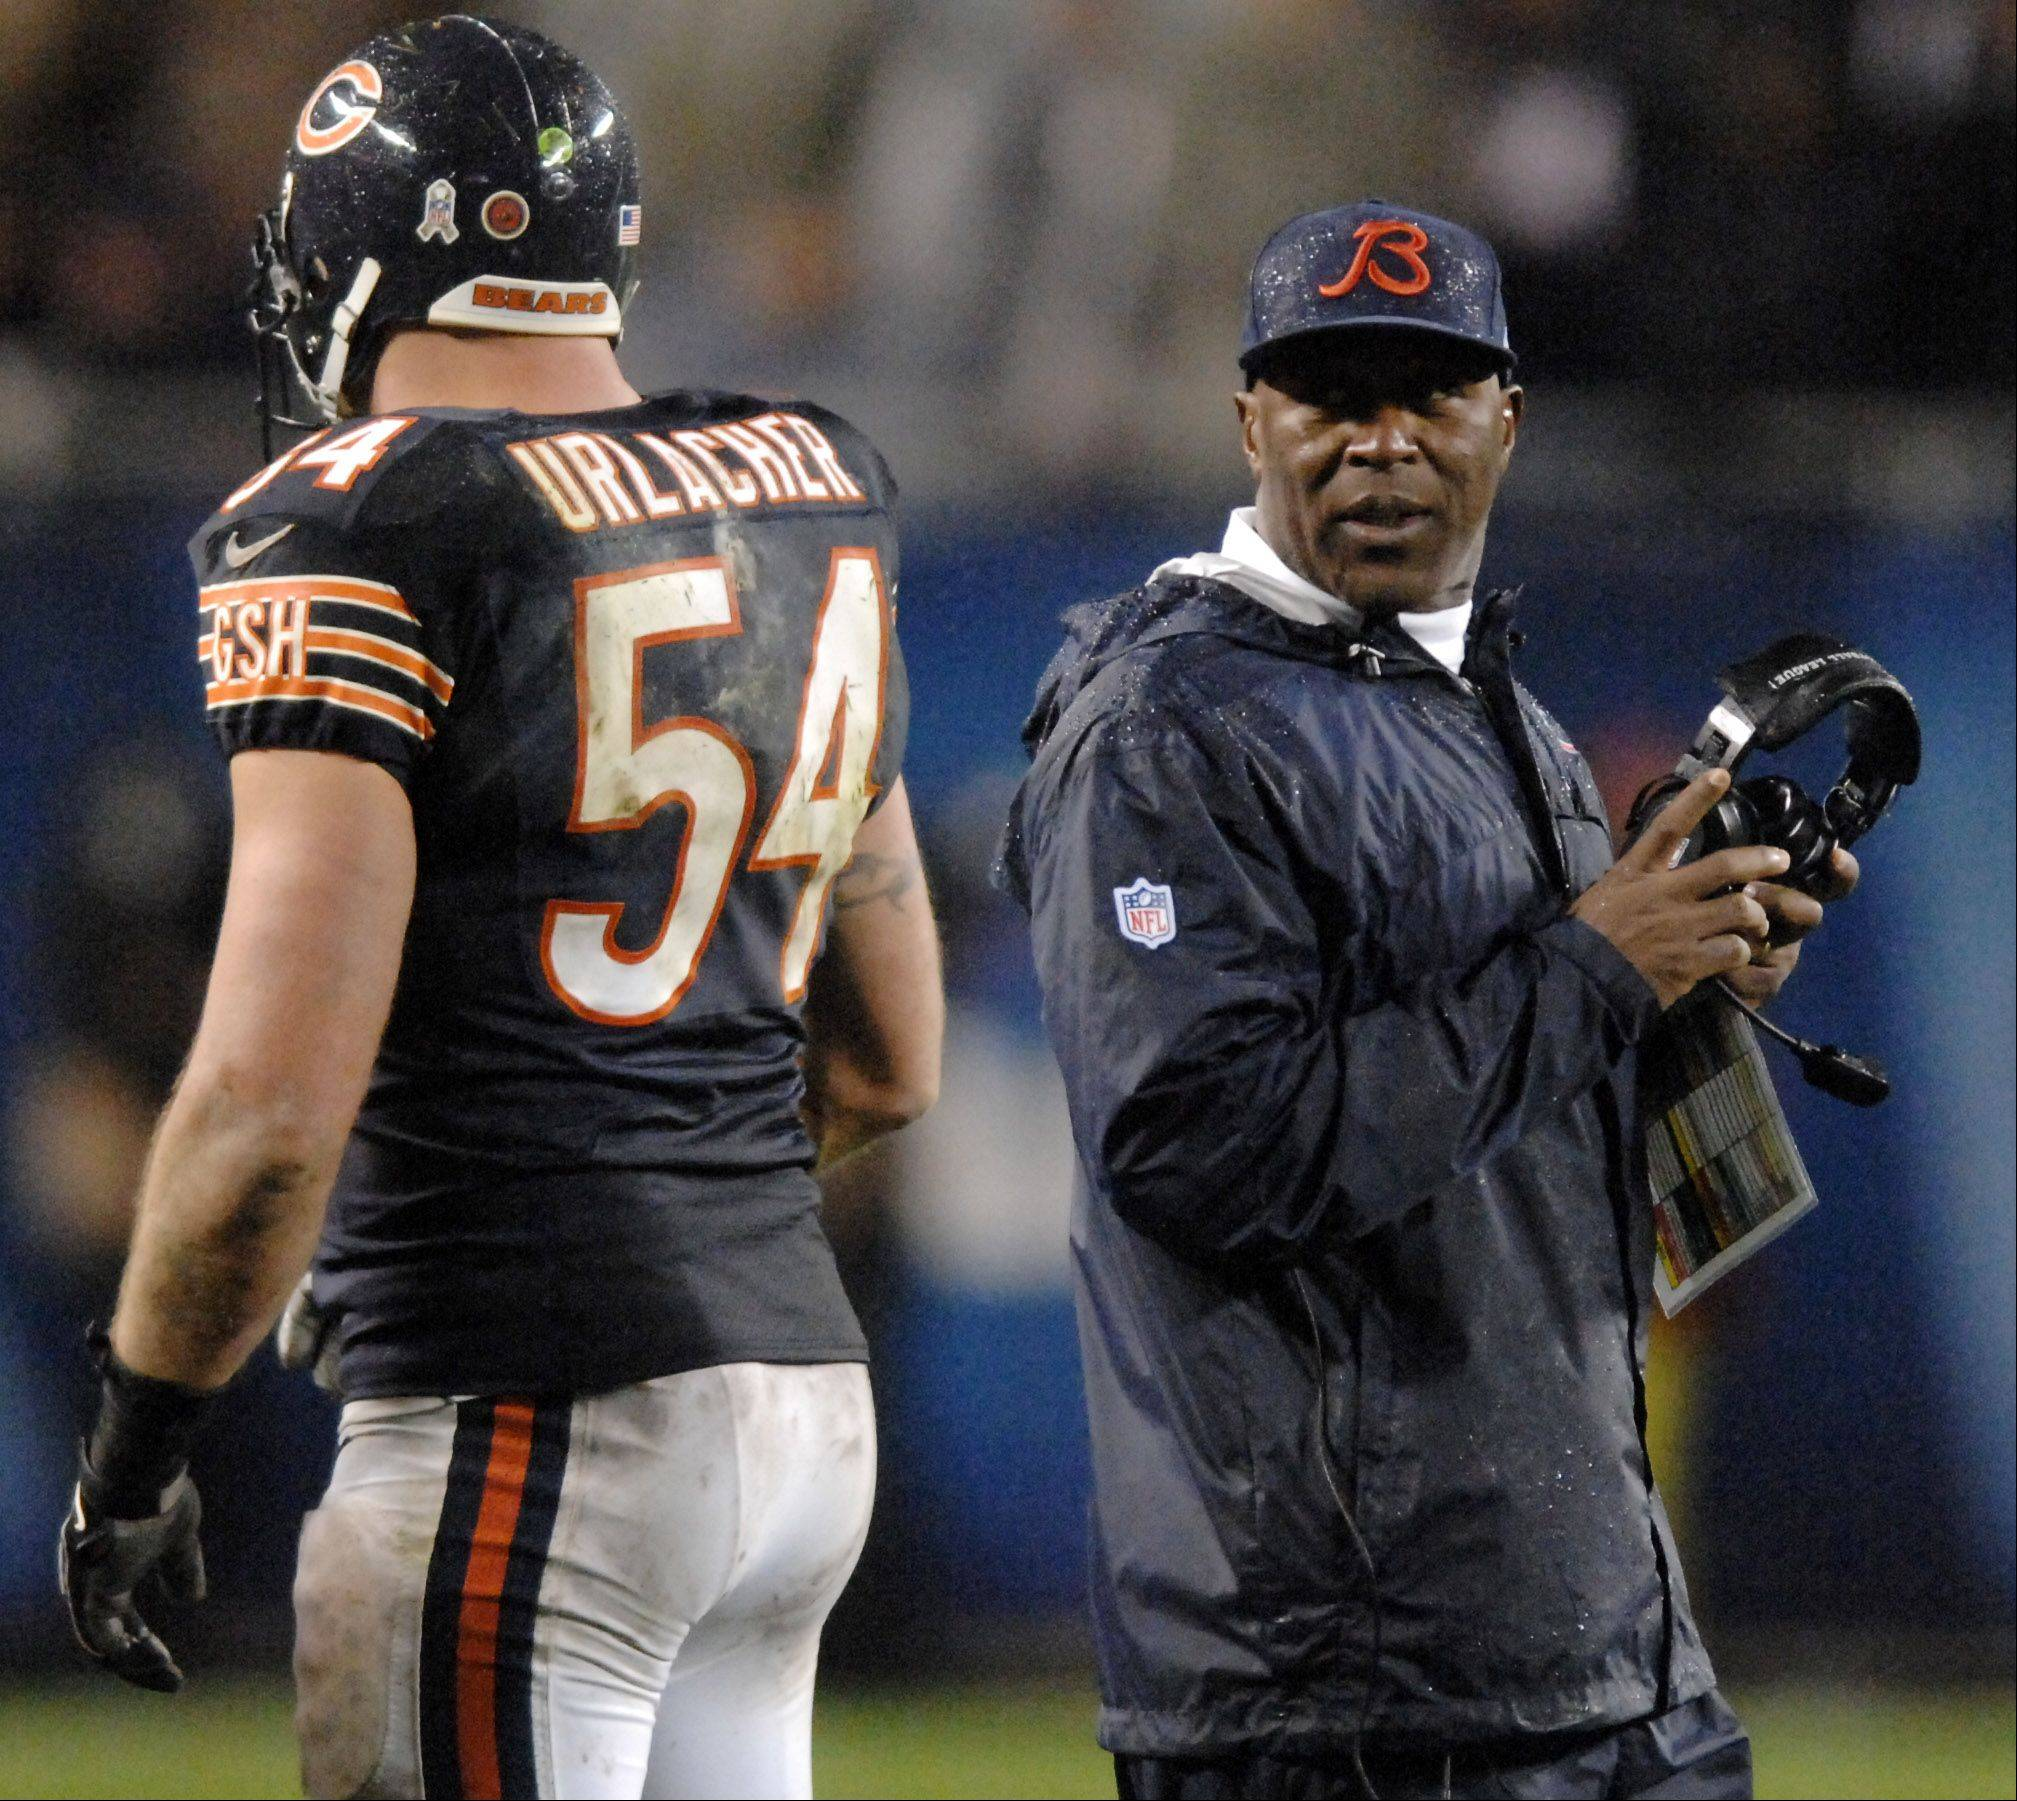 Chicago Bears head coach Lovie Smith has a word with linebacker Brian Urlacher.